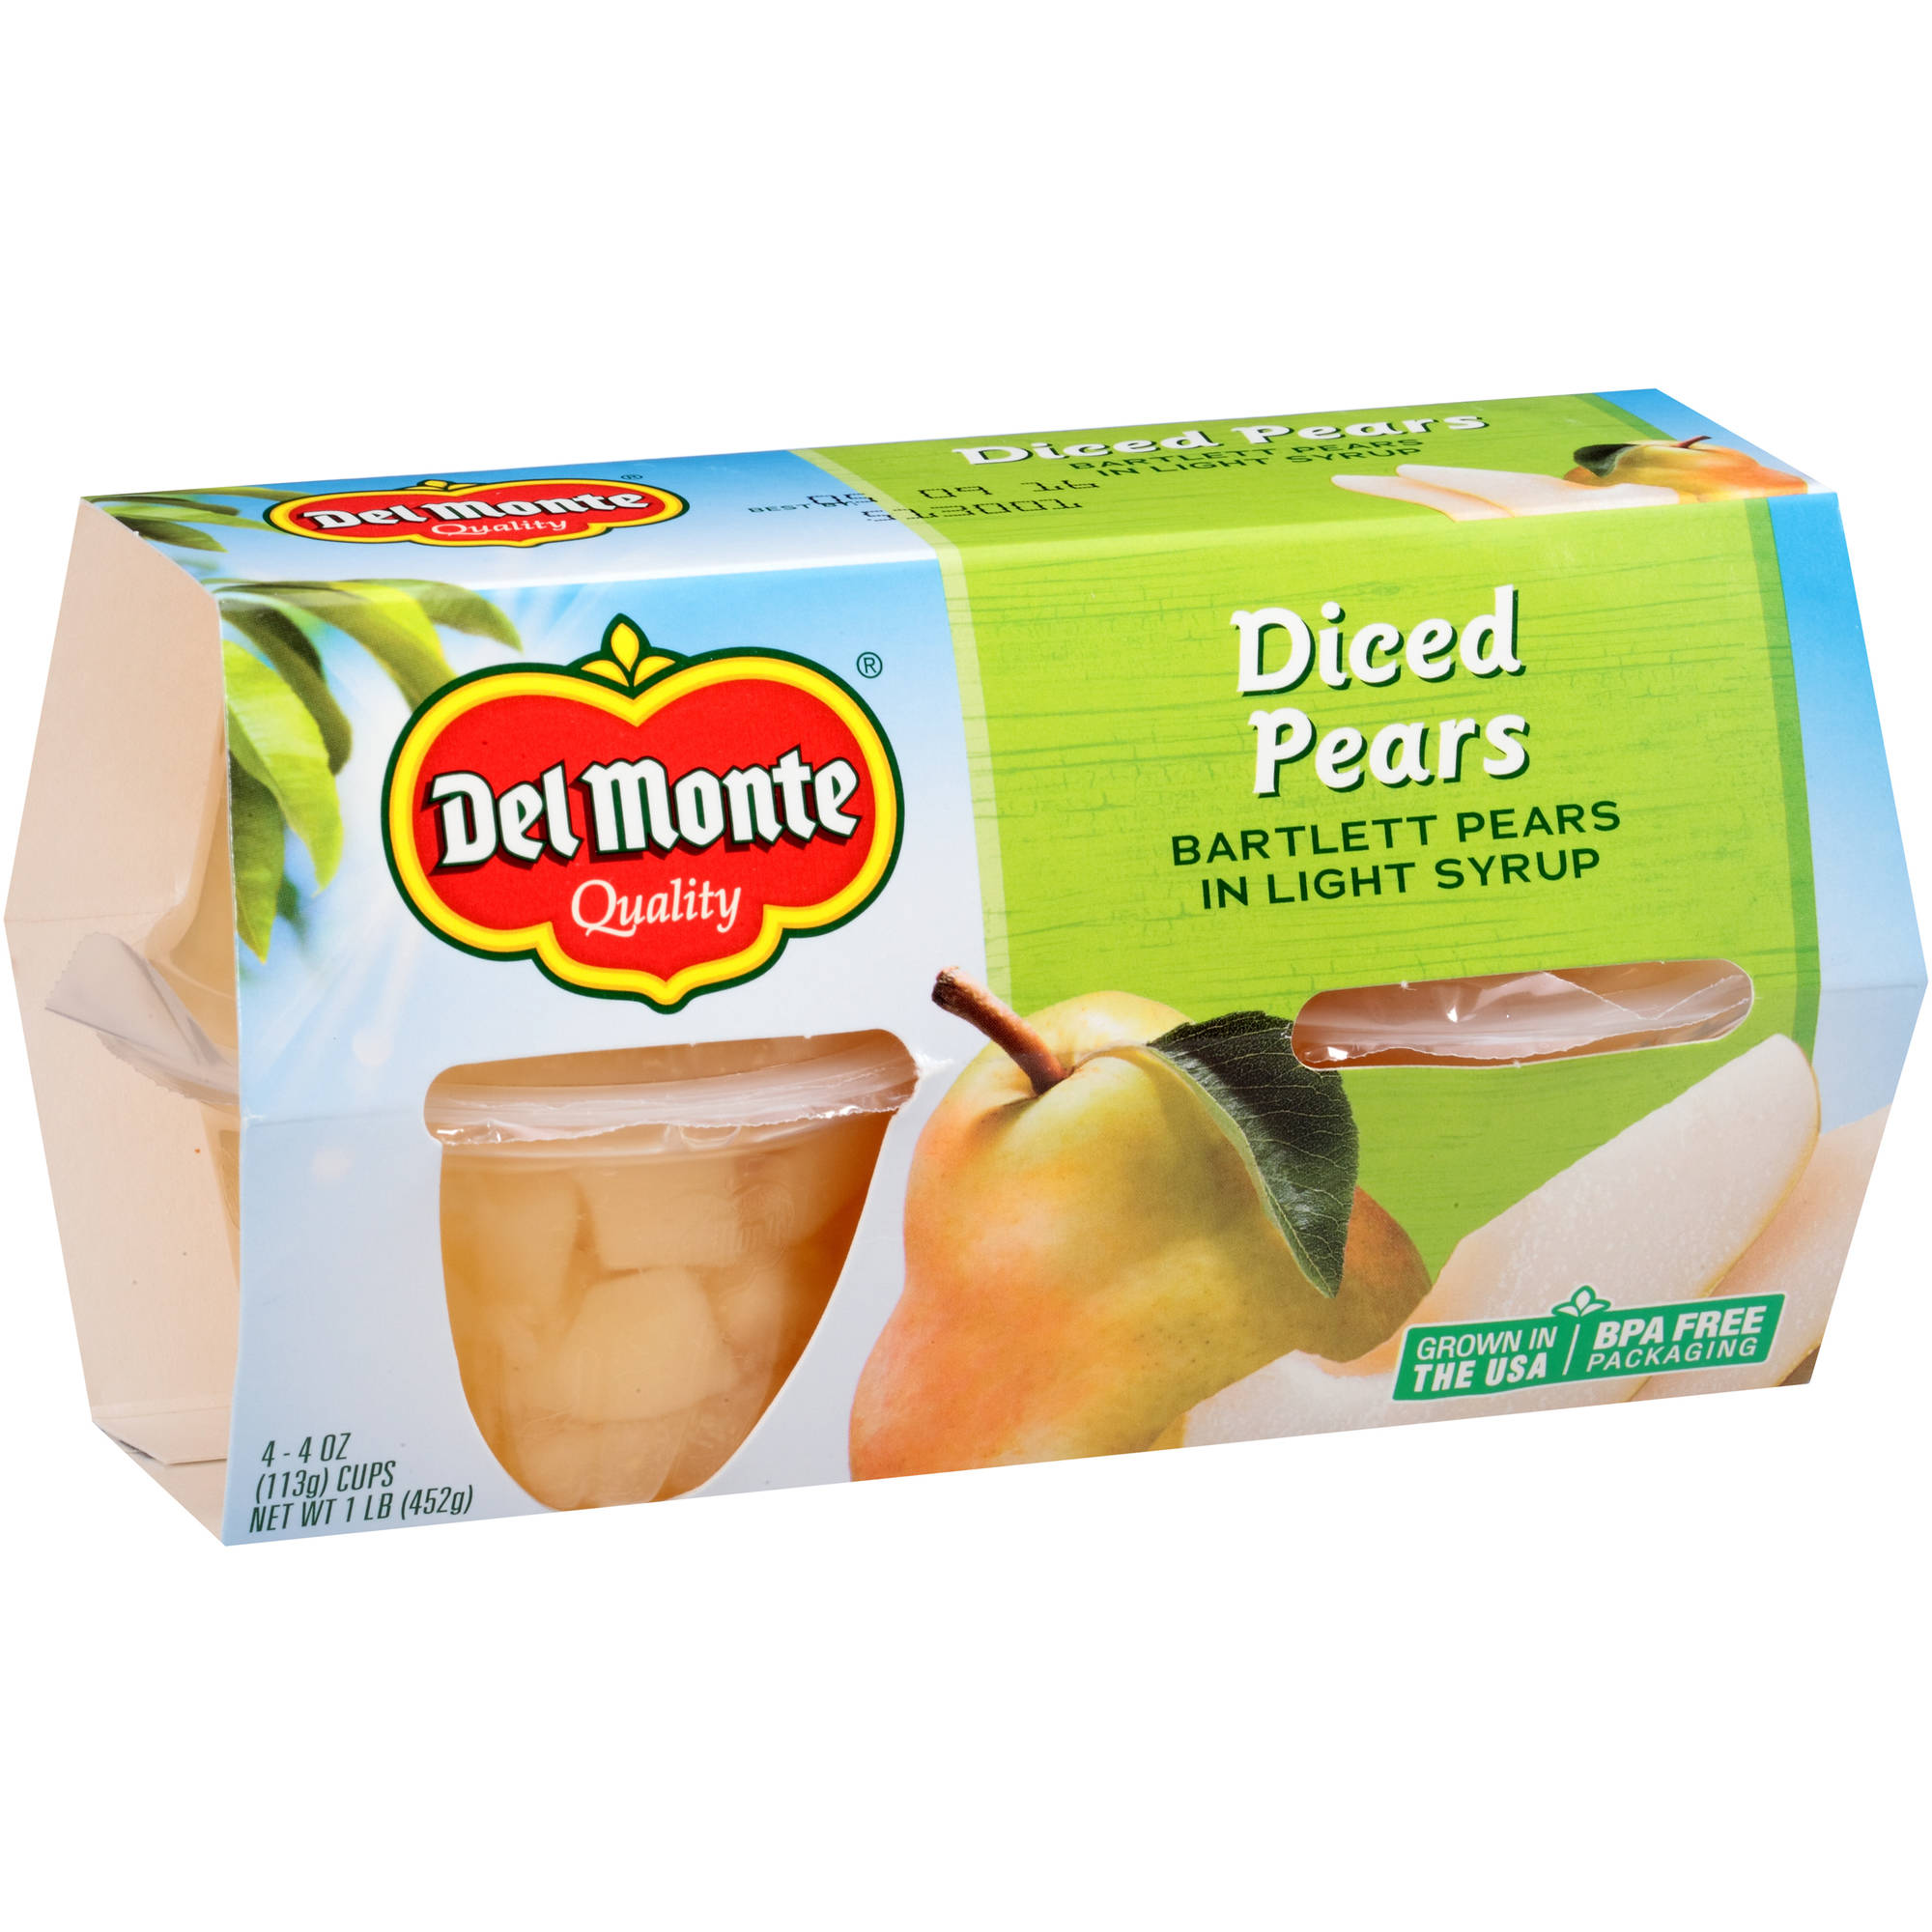 Del Monte Diced Pears Bartlett Pears in Light Syrup, 4 oz, 4 count